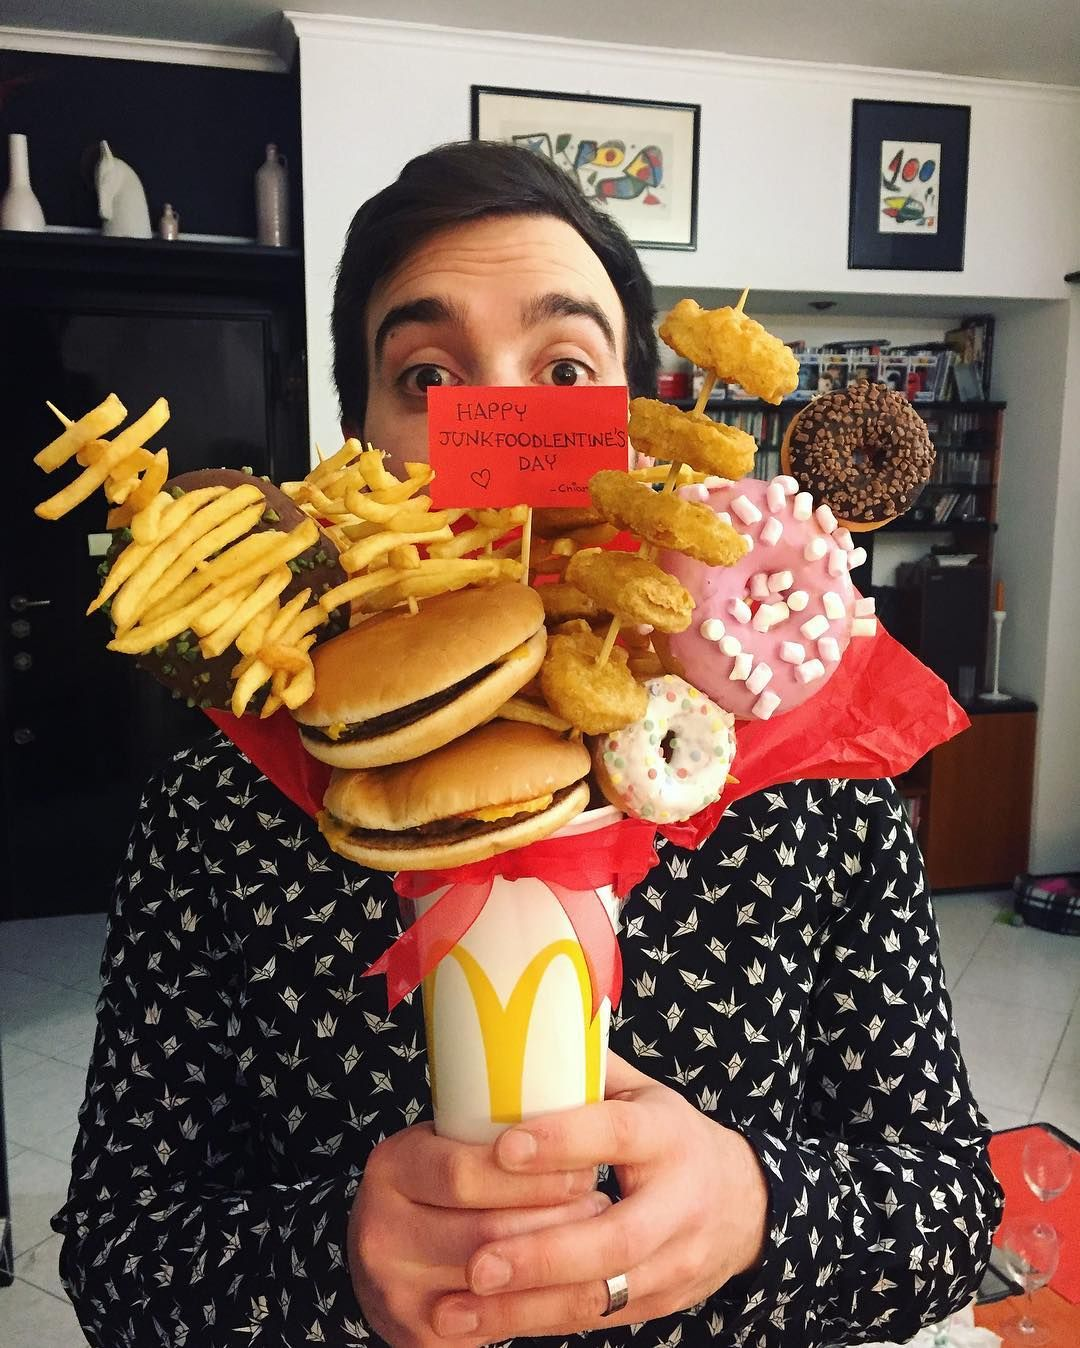 foodbouquet • Instagram photos and videos Food bouquet